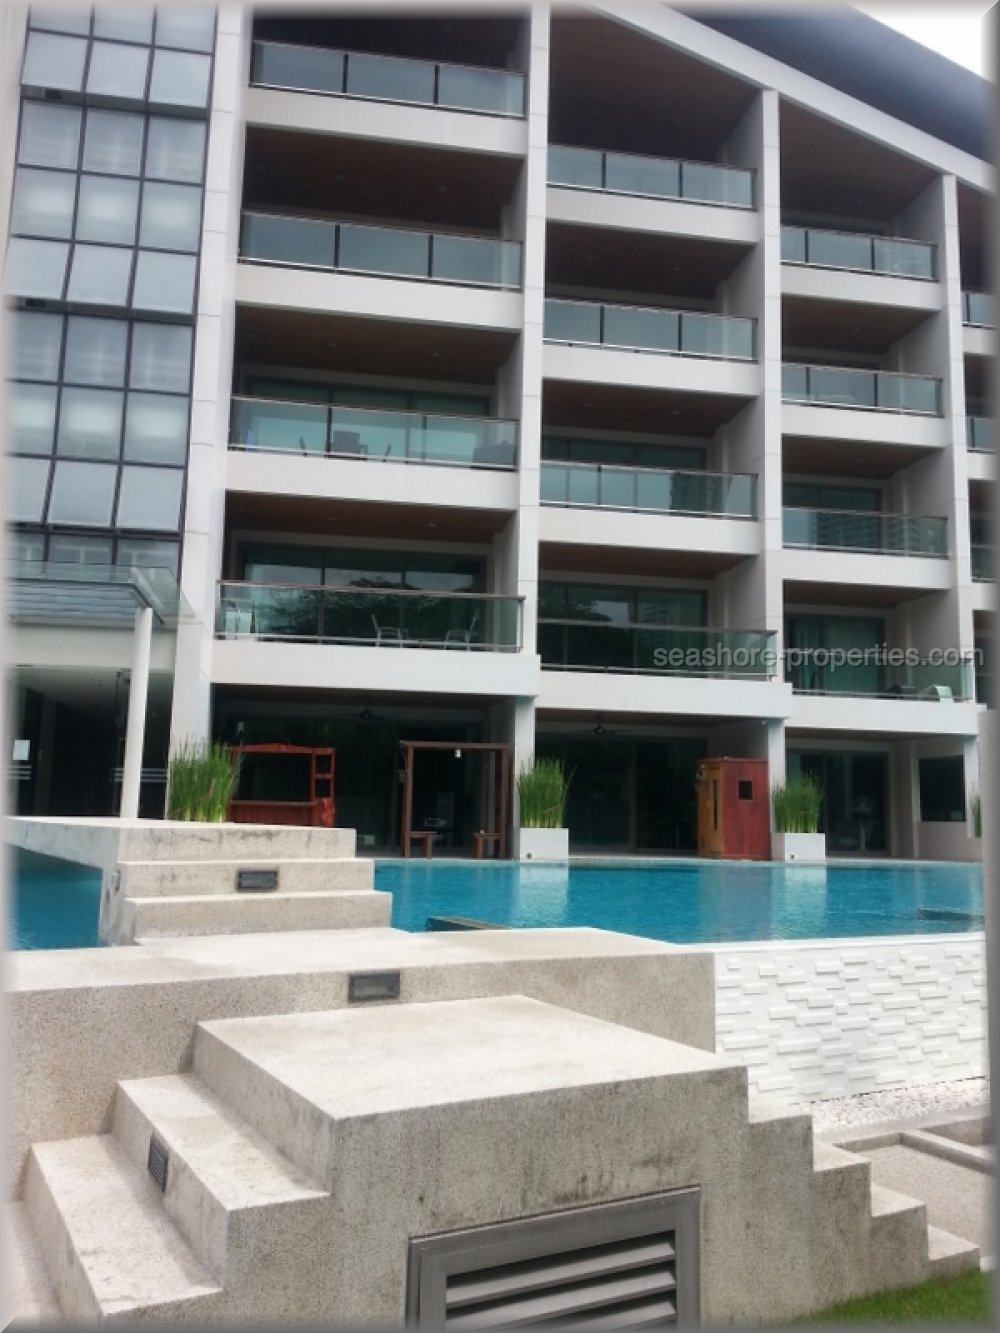 ananya beach front condominium    to rent in Wong Amat Pattaya